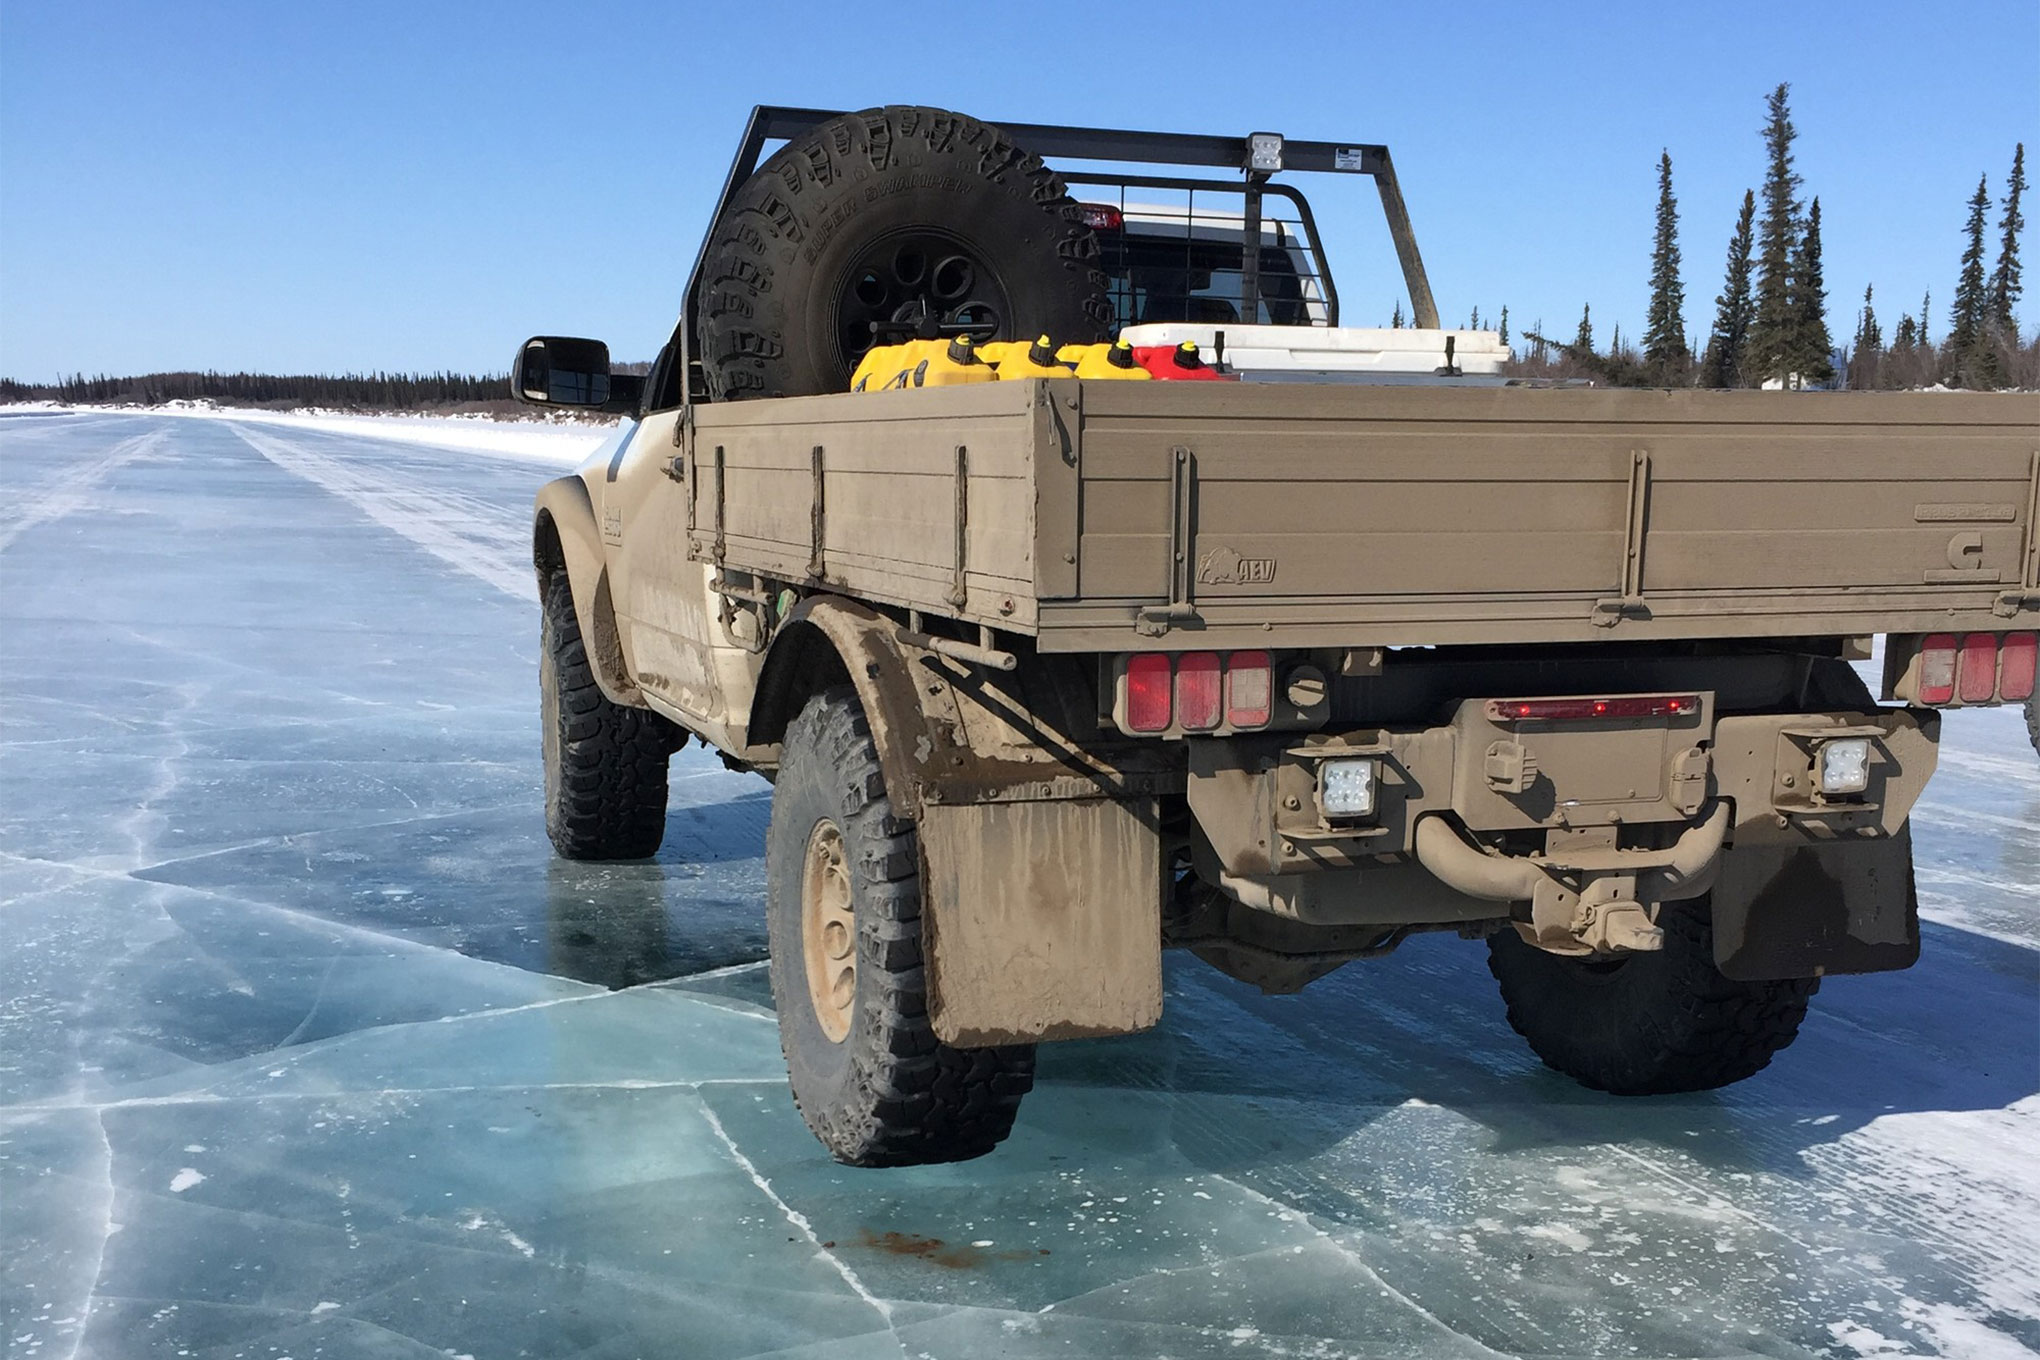 We drove all day and eventually the road changed from river to the Arctic Ocean. We were driving on frozen saltwater, and with ice over 8 feet thick it was plenty safe for our convoy.